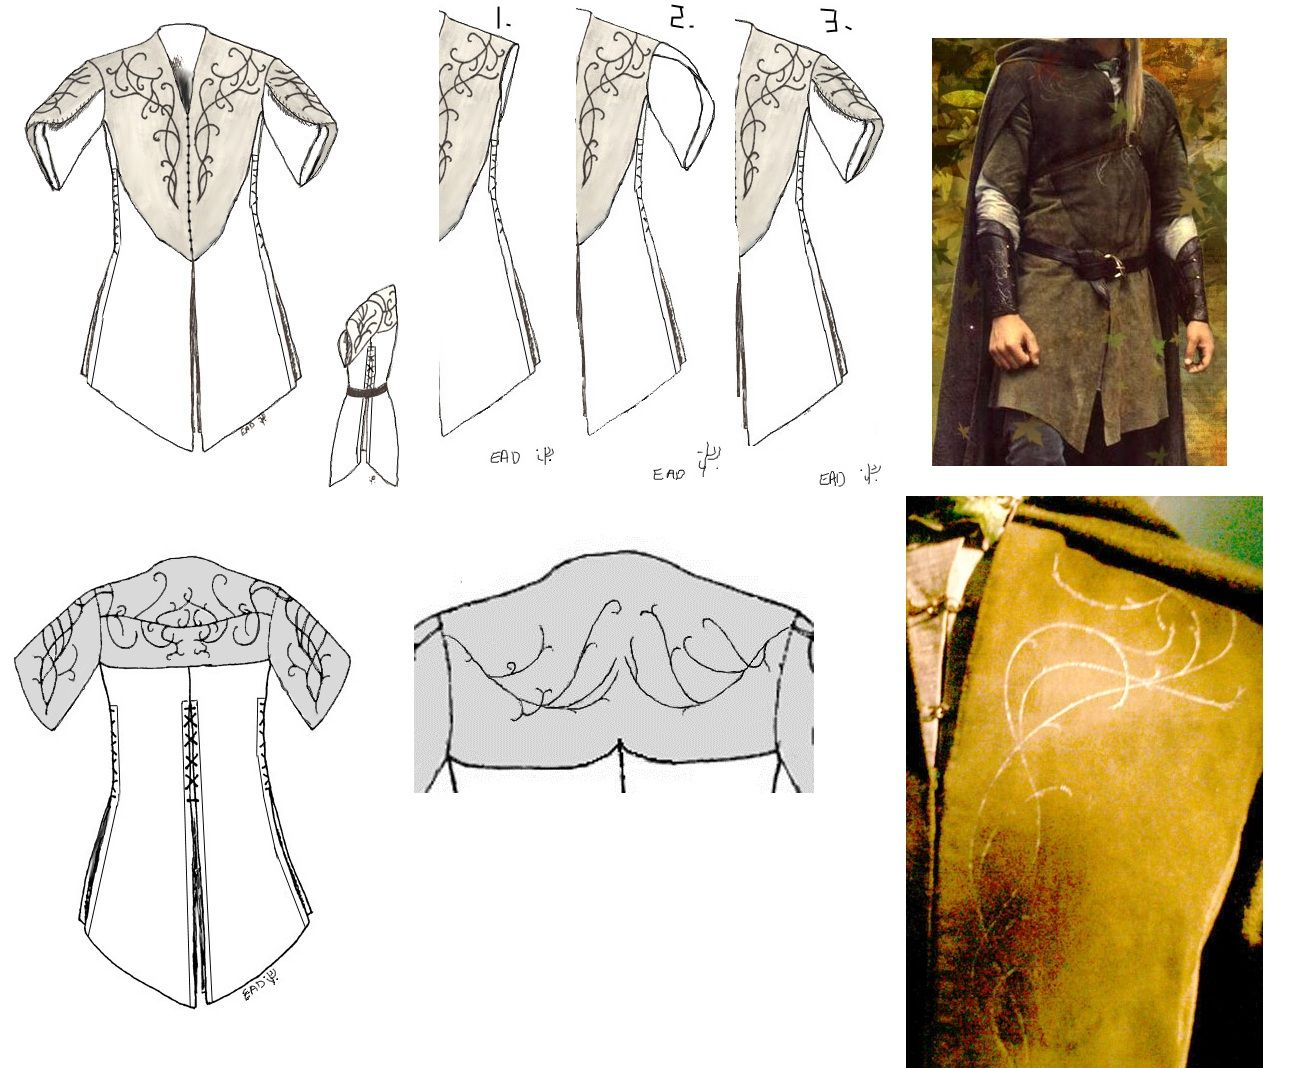 legolas costume pattern google search middle earth